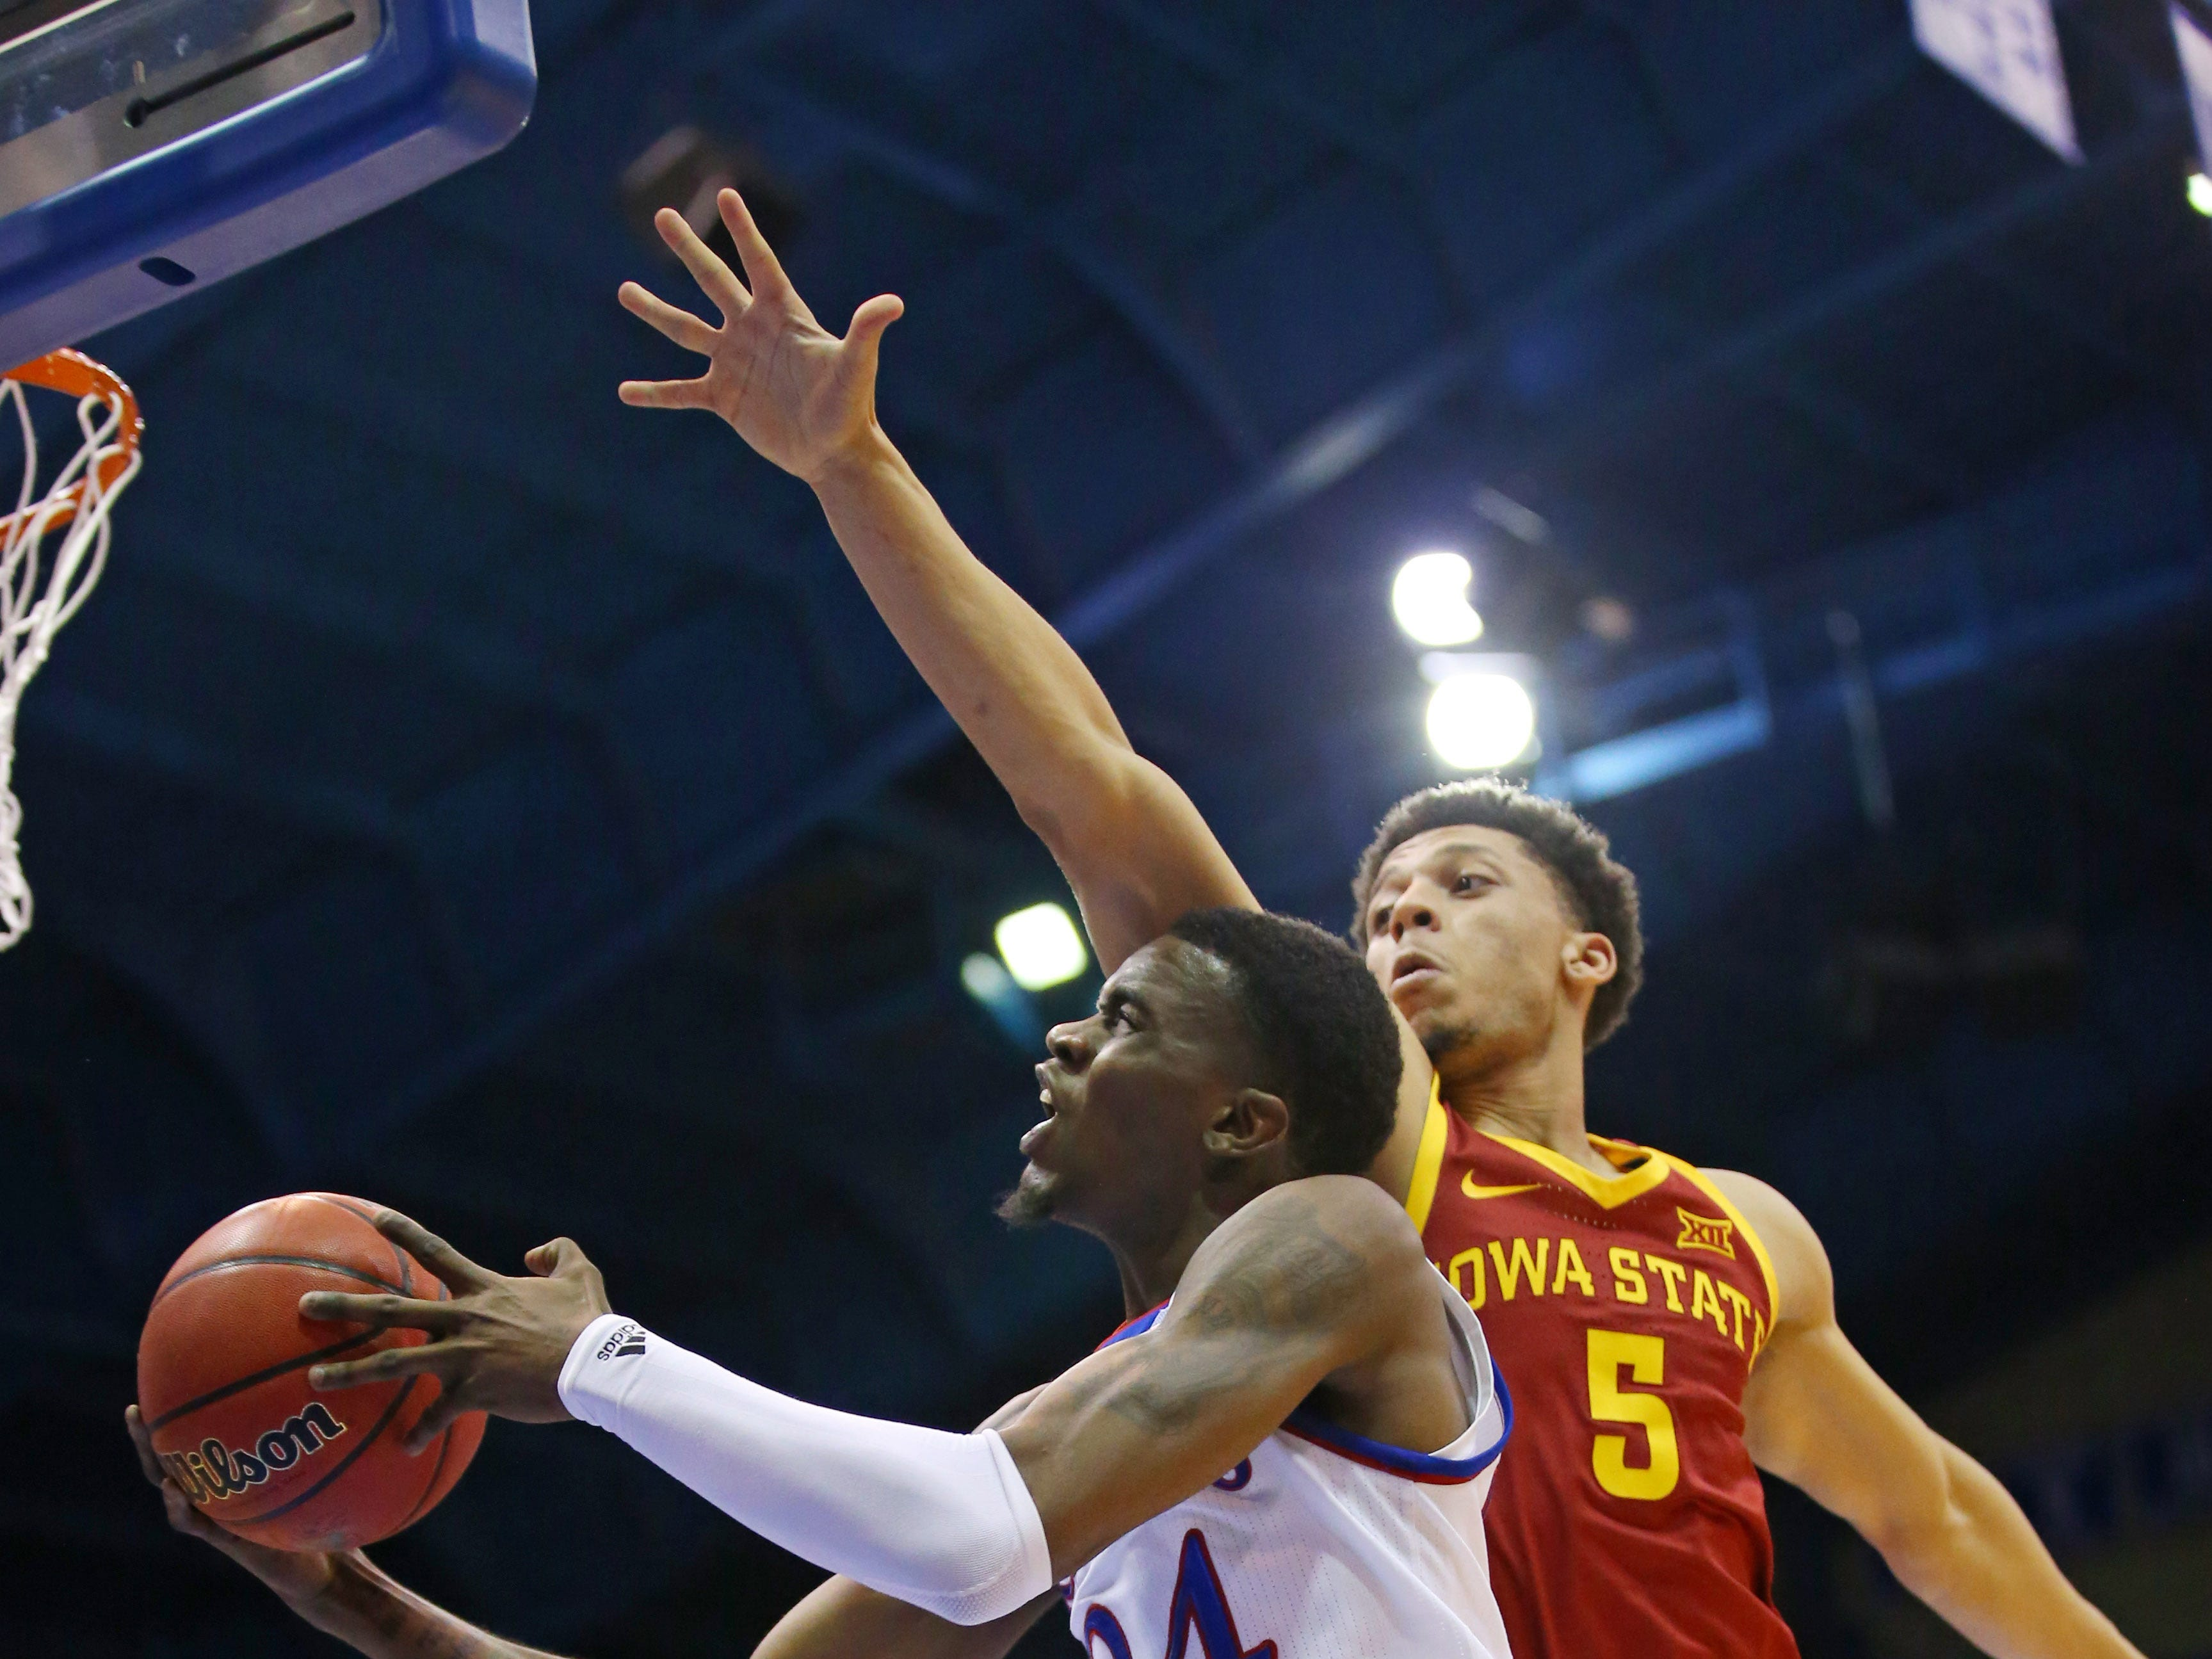 Kansas guard Lagerald Vick (24) goes up for a shott as Iowa State guard Lindell Wigginton (5) defends in the second half of their game at Allen Fieldhouse in Lawrence, Kansas, on Monday, Jan. 21, 2019.